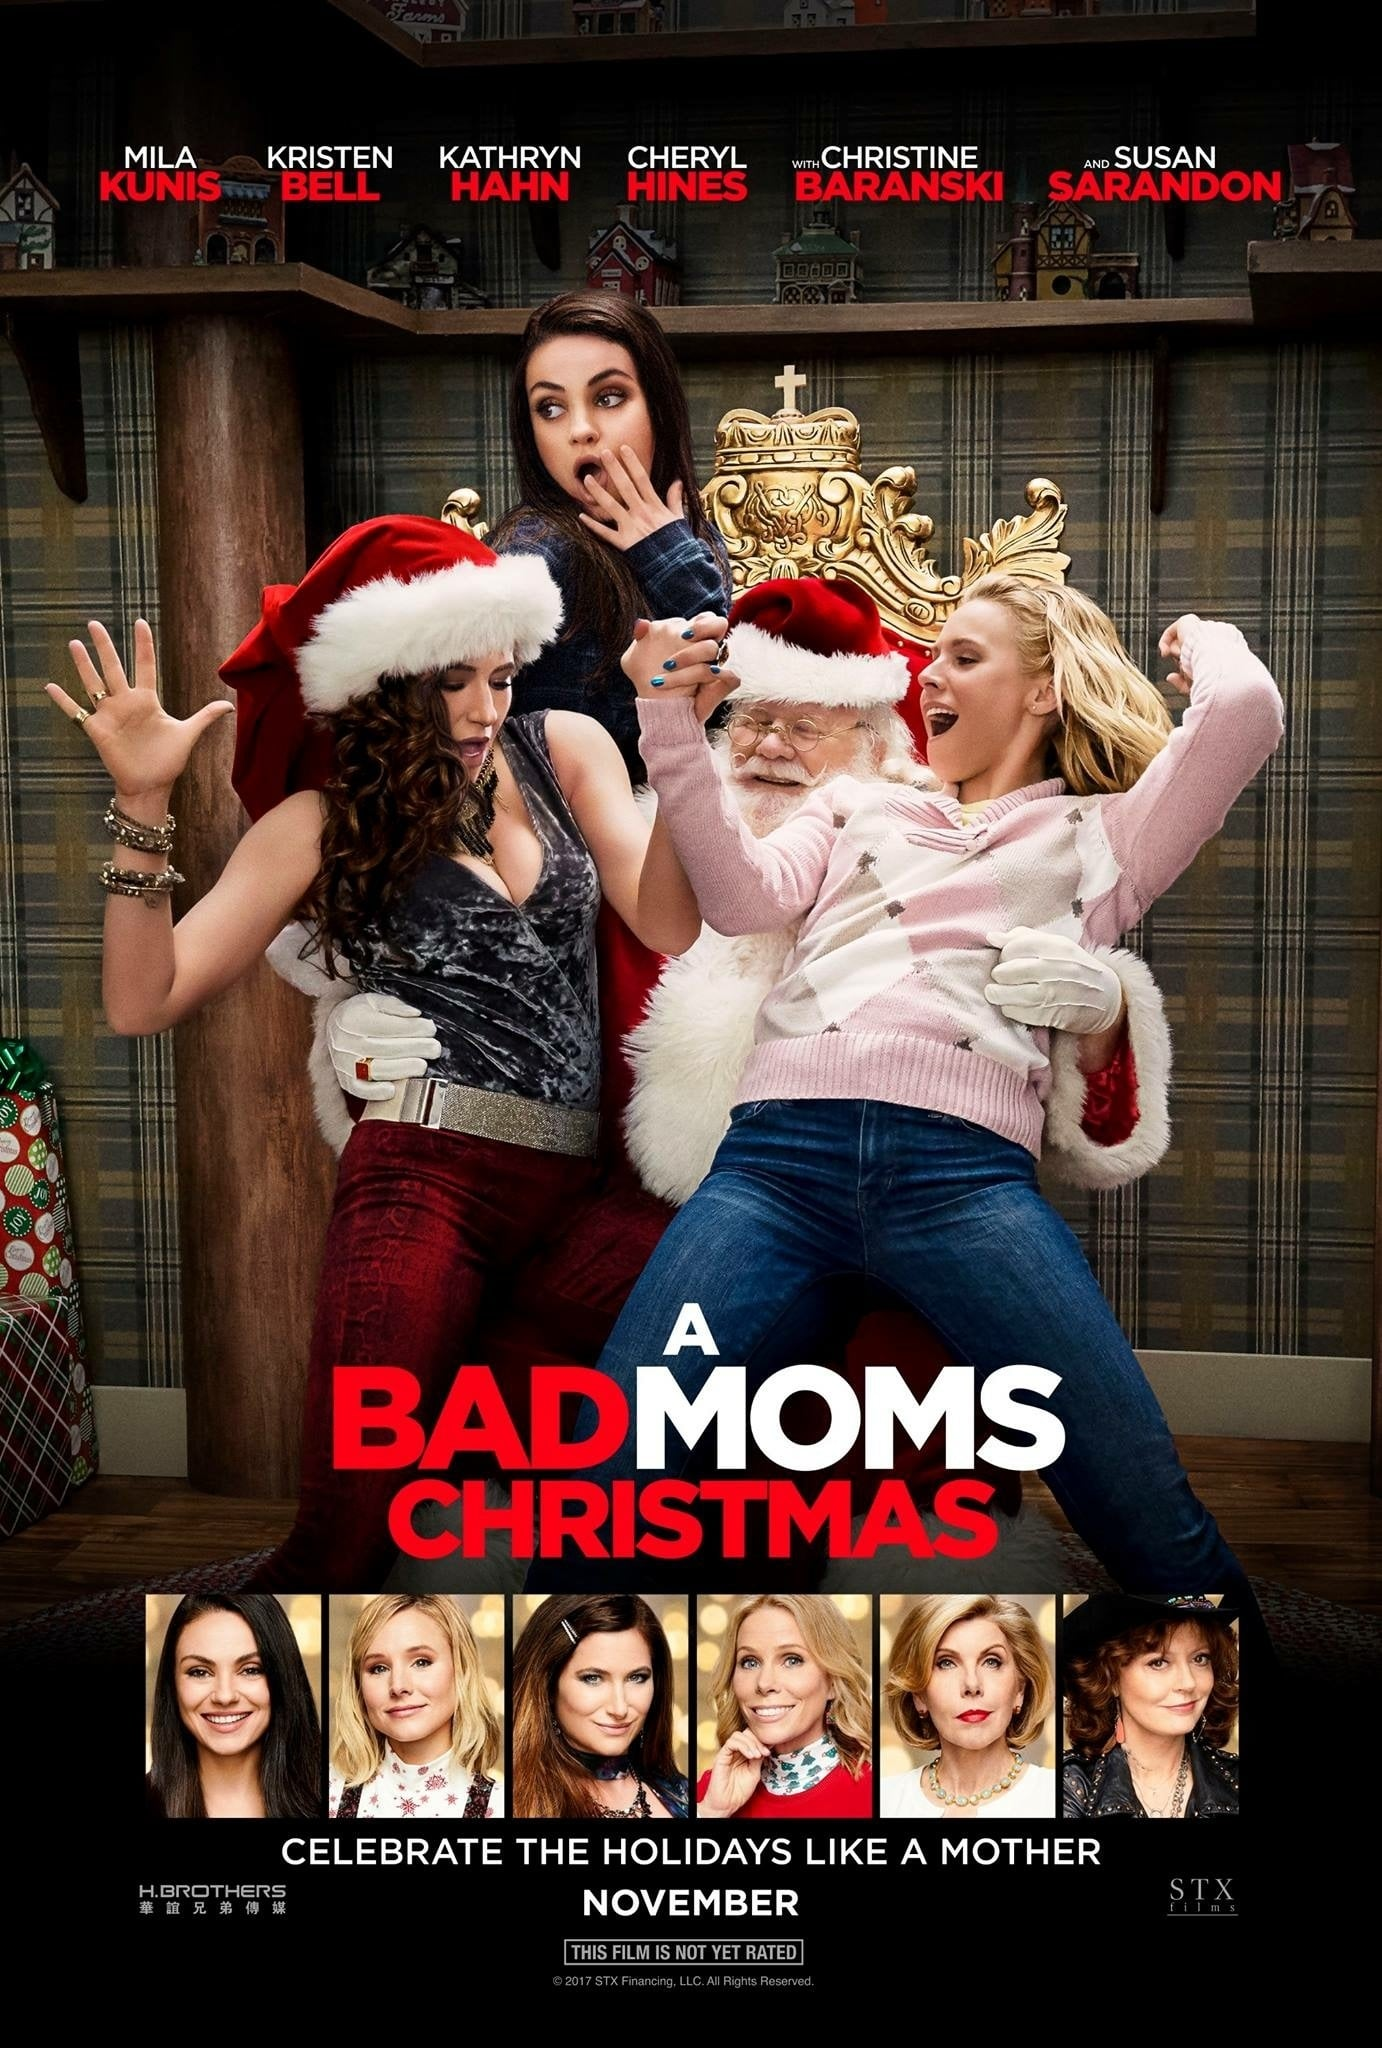 Poster and image movie Film A Bad Moms Christmas - A Bad Moms Christmas - A Bad Moms Christmas -  2017